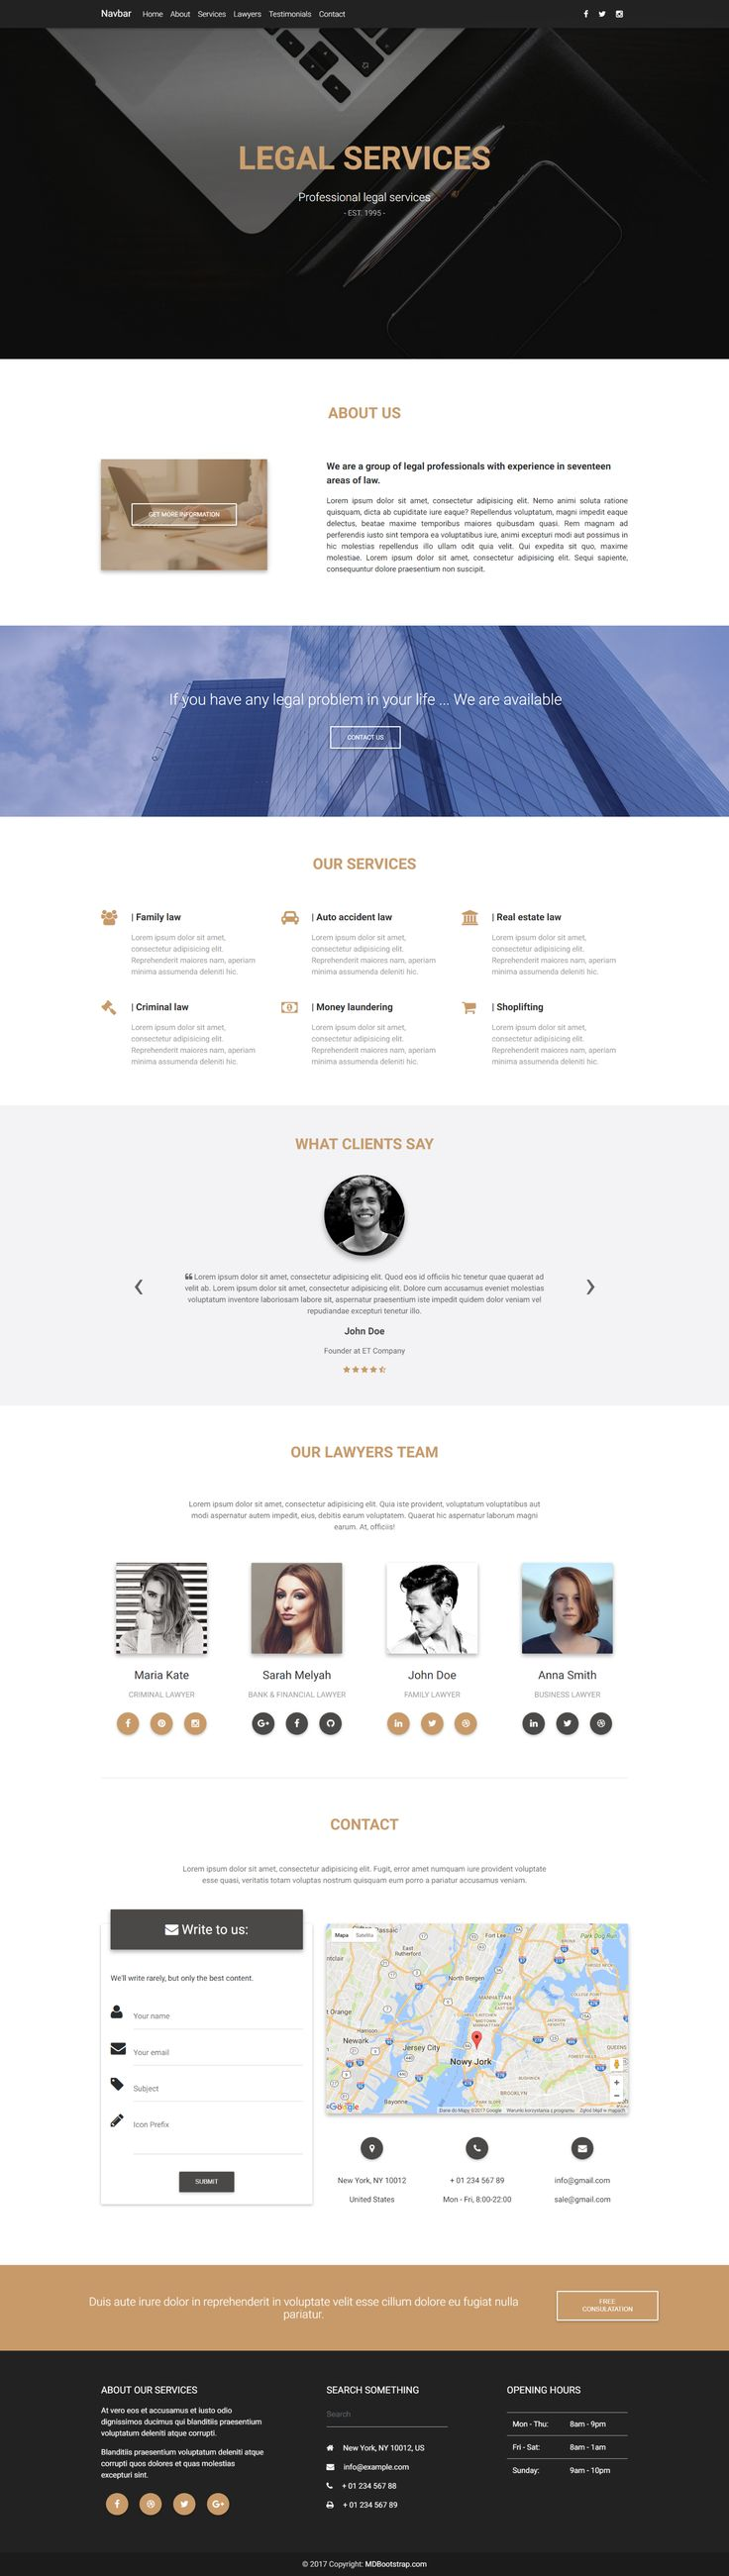 Created with Material Design for Bootstrap, fully responsive portfolio template, designed for legal related businesses